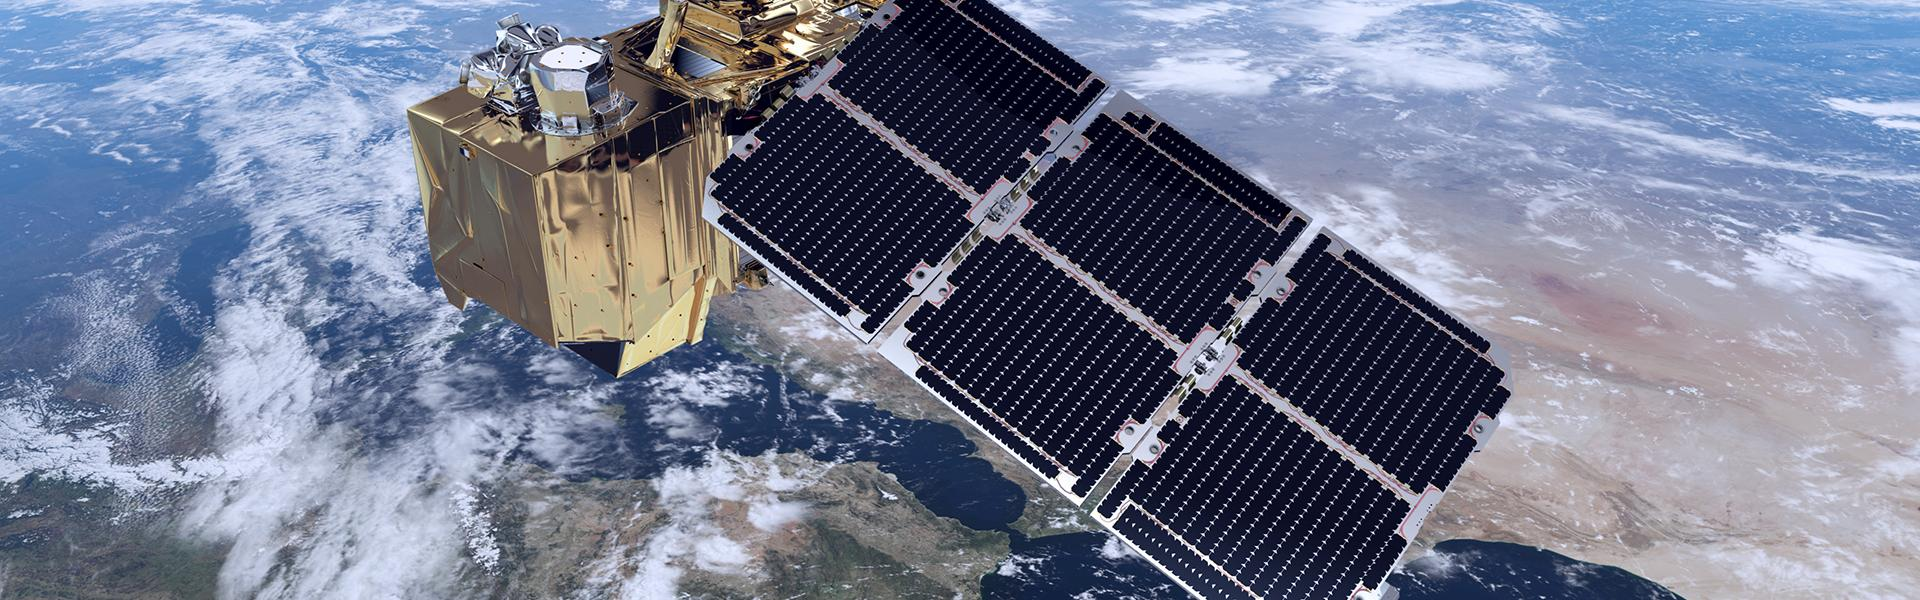 Uganda: New Satellite Data Technology to Provide Farmers With Information